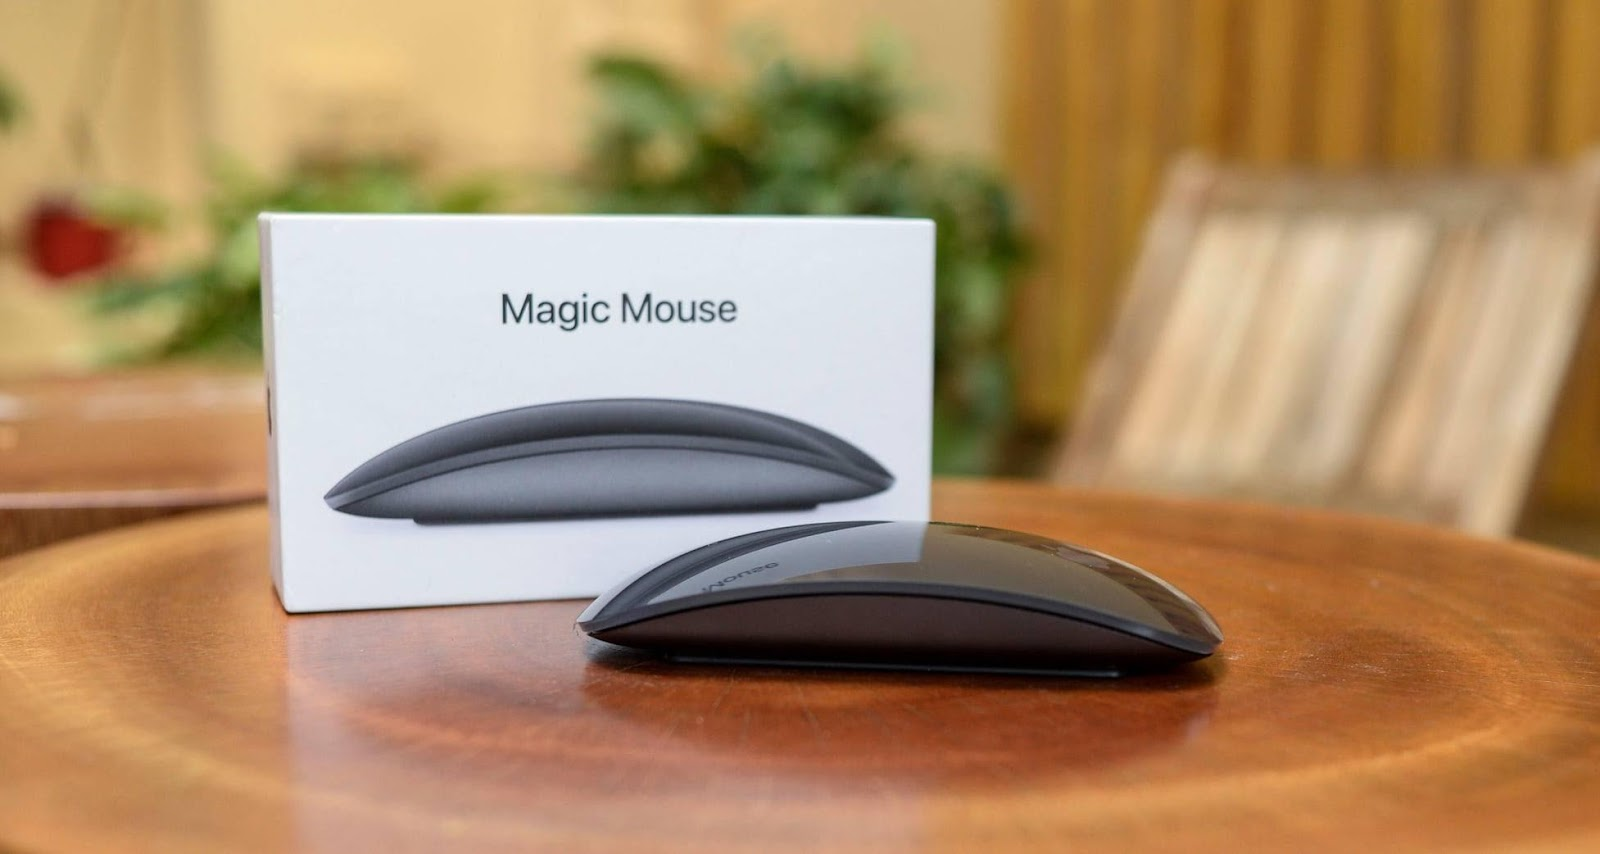 Image may contain: text that says 'Magic MagicMouse Mouse'